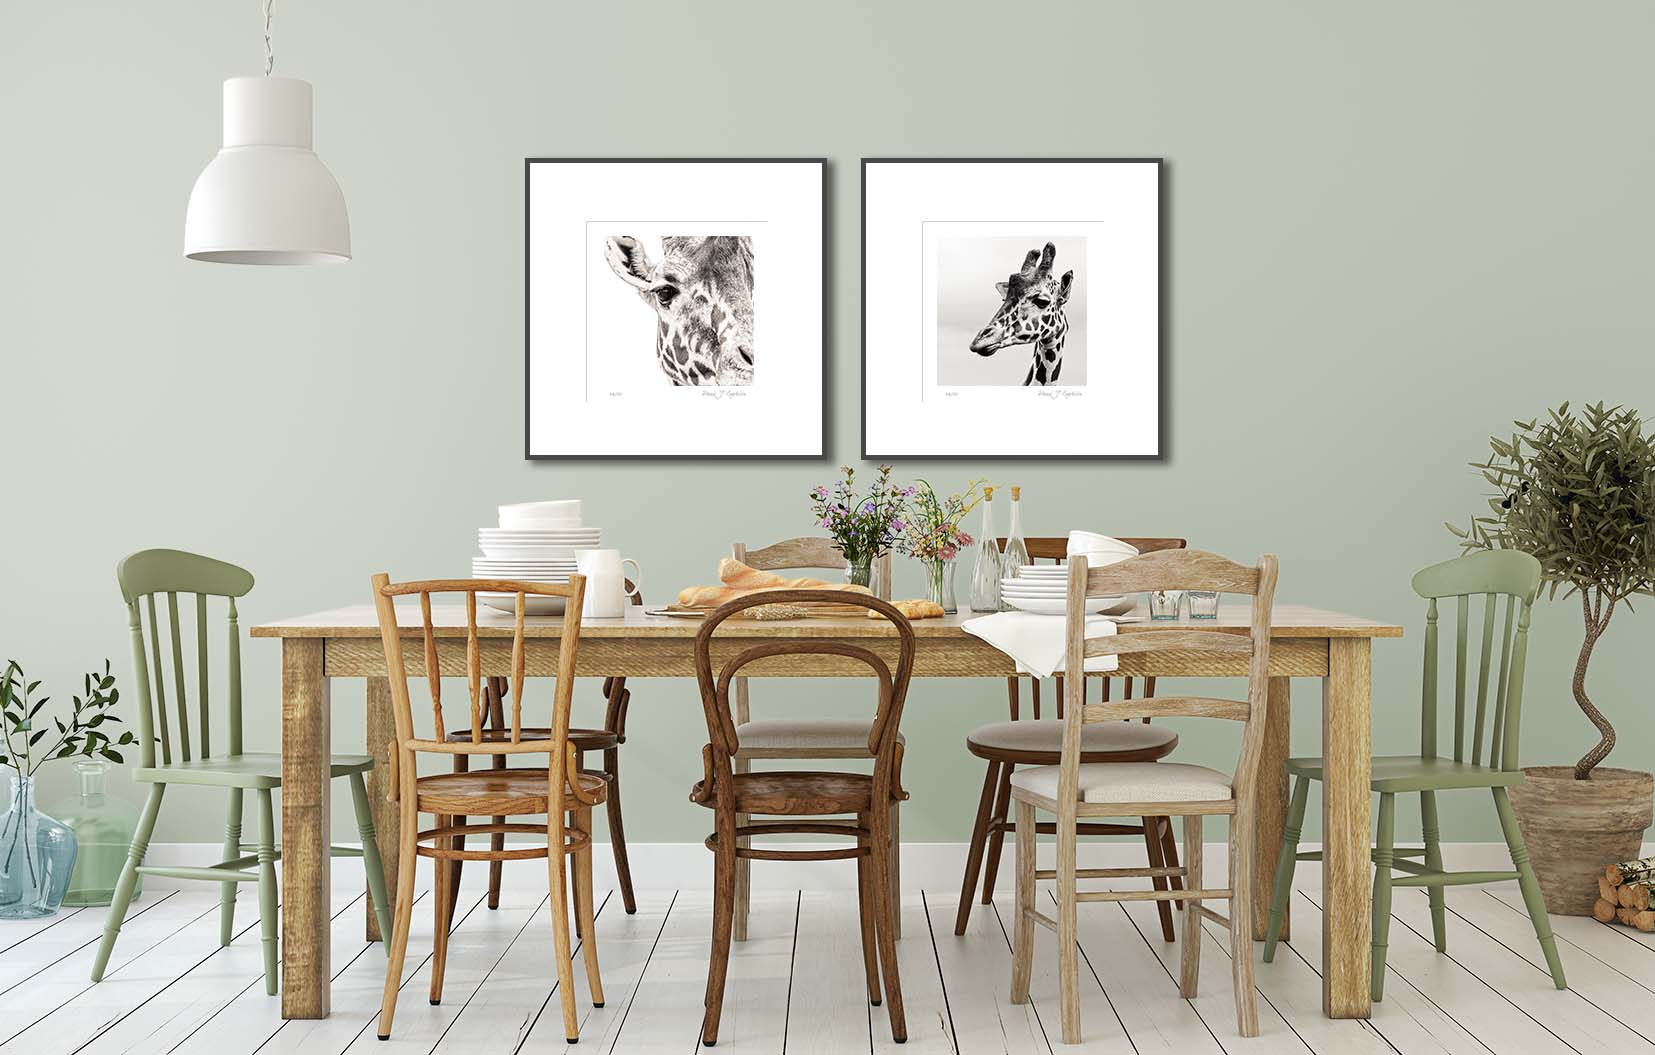 Black and white portraits of a giraffe. Limited edition photographic prints by fine art photographer Paul Coghlin.